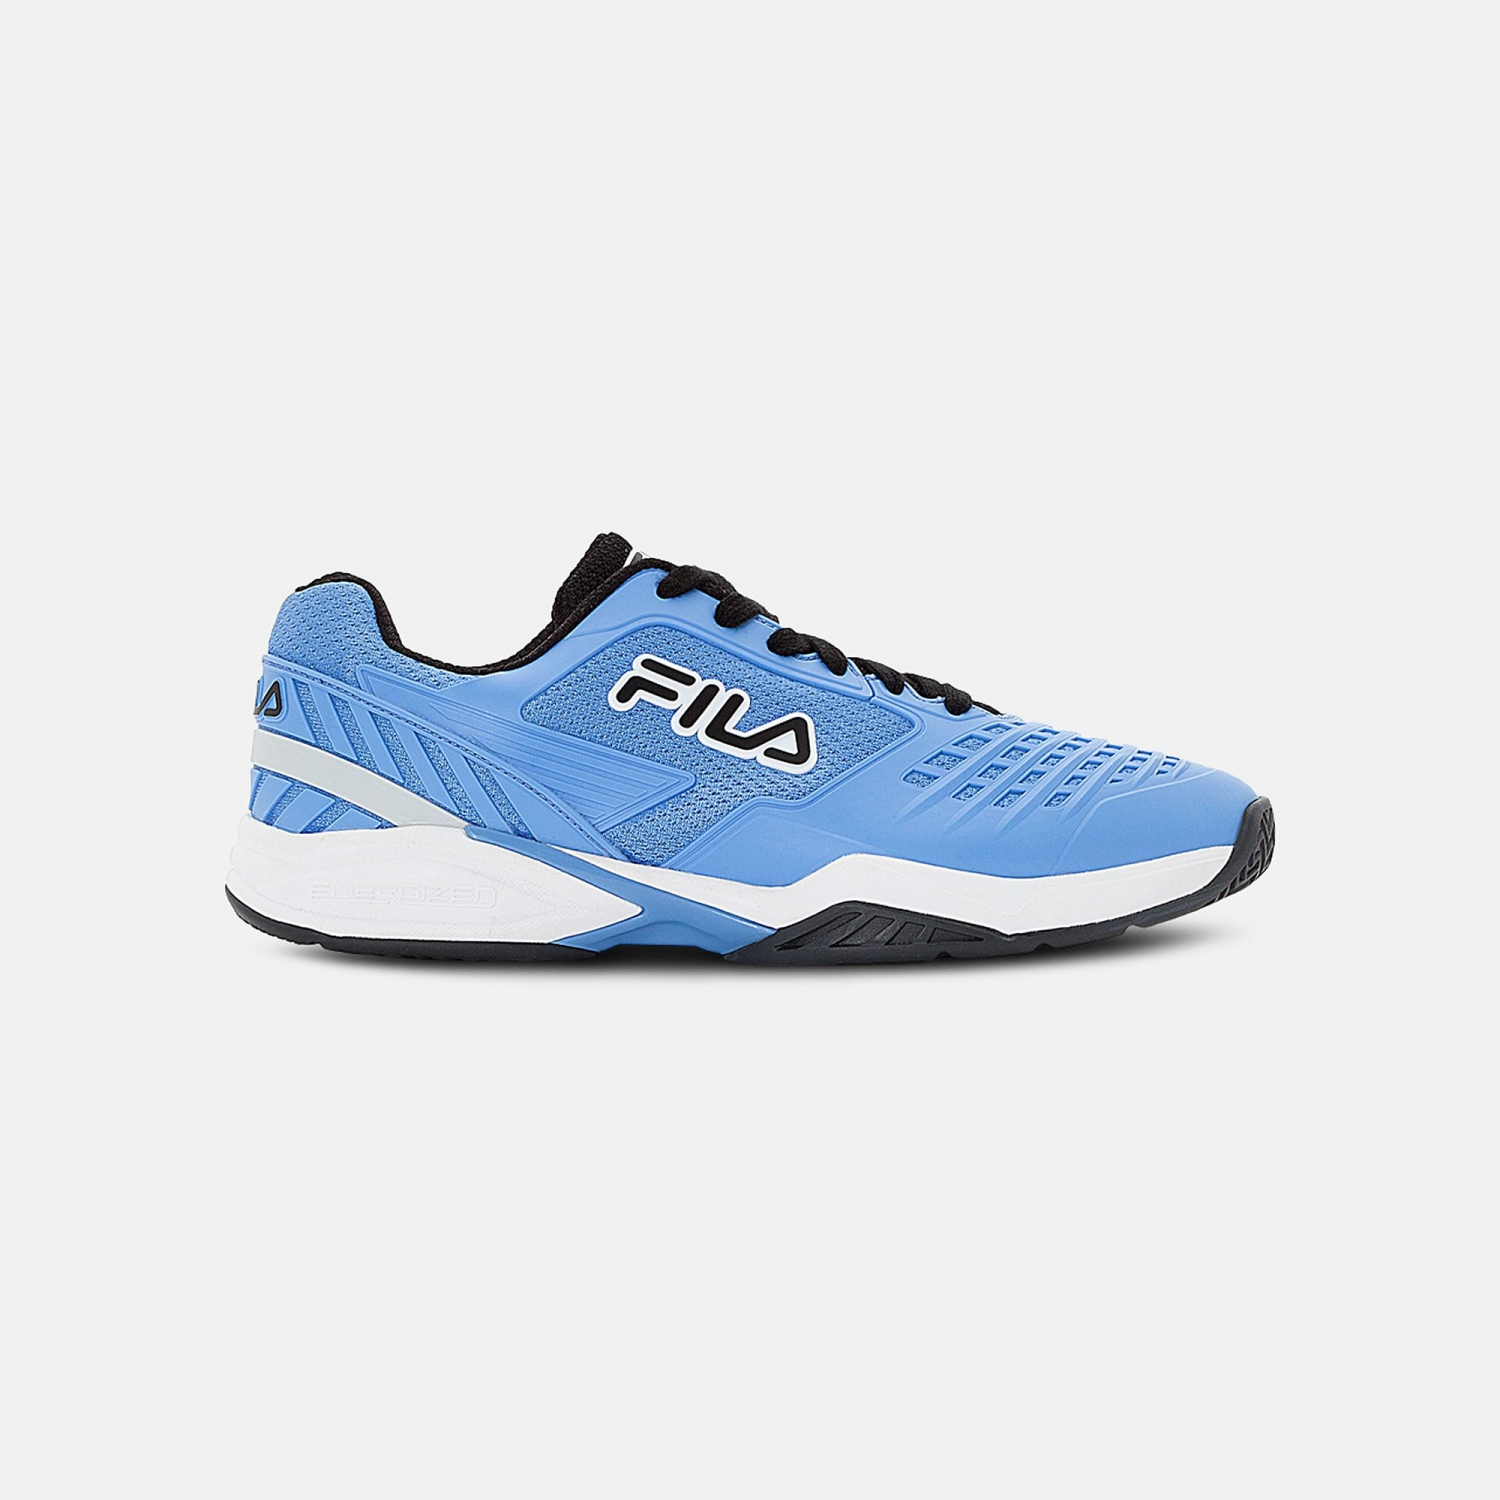 Fila Axilus 2 Energized Tennis Shoe Men blue-white-black Bild 1